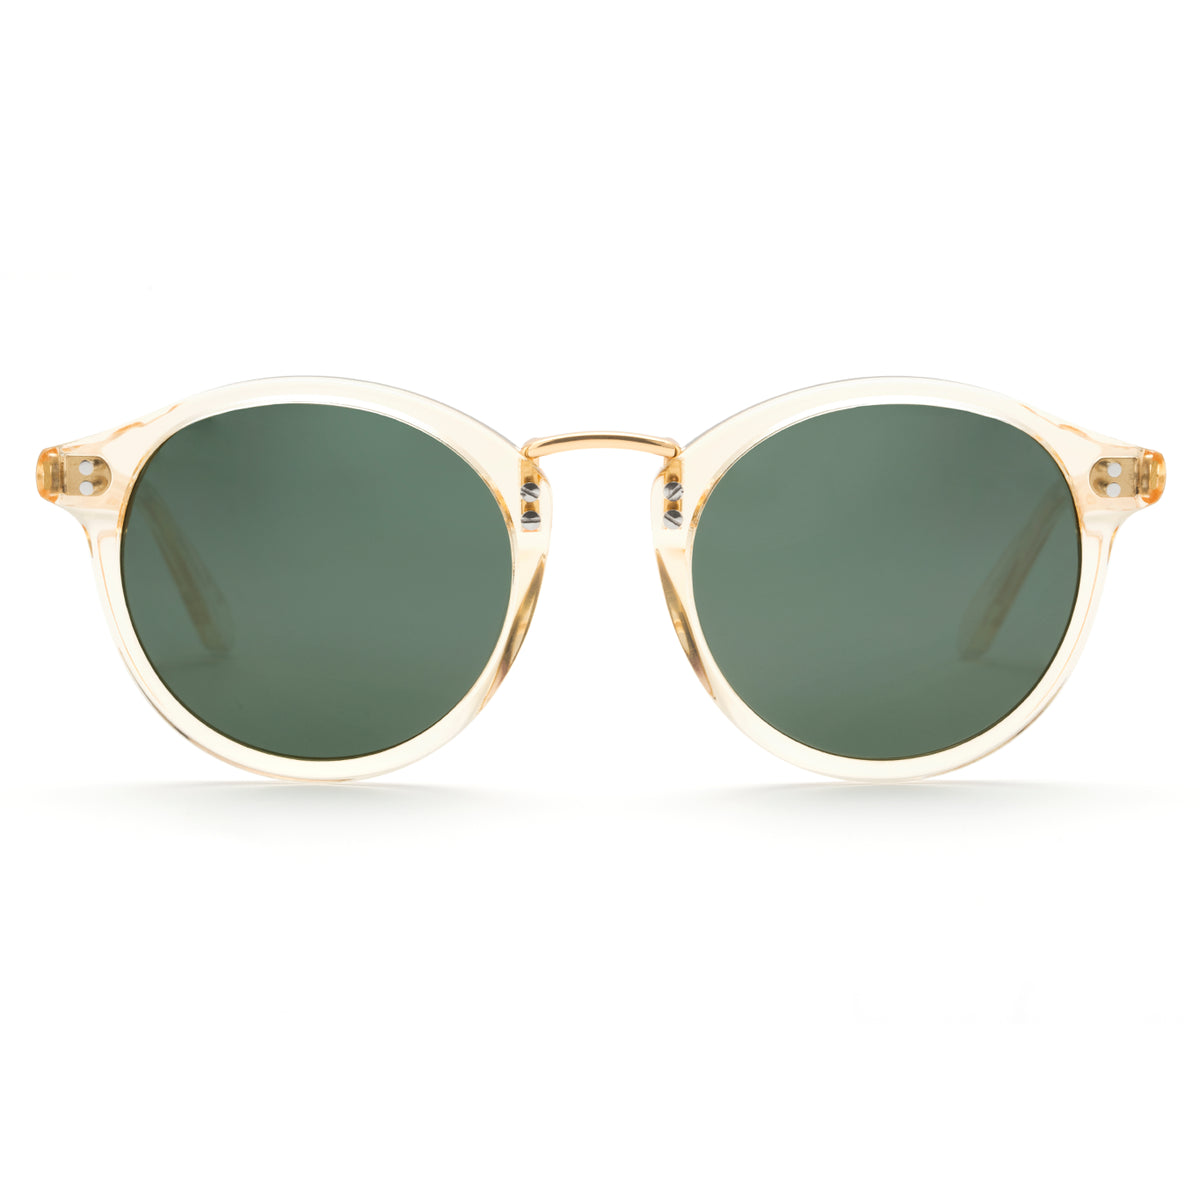 TAYLOR | Champagne Polarized 24K handcrafted acetate eyewear